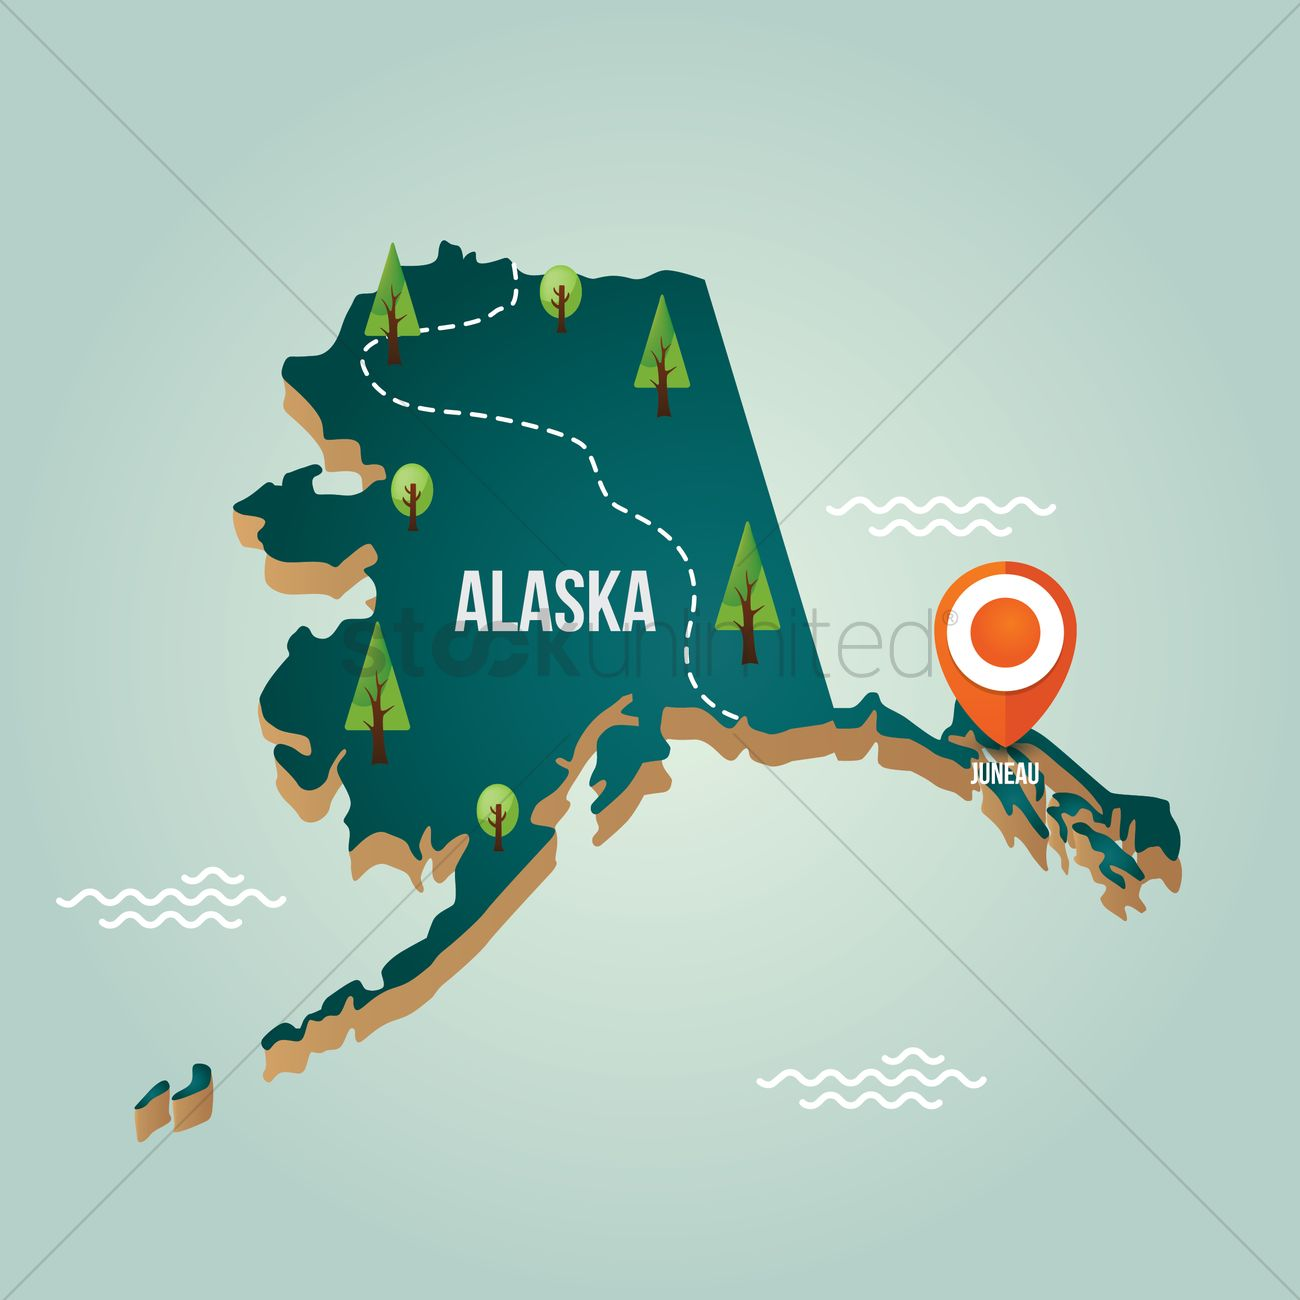 Alaska Map With Capital City Vector Image 1536589 Stockunlimited